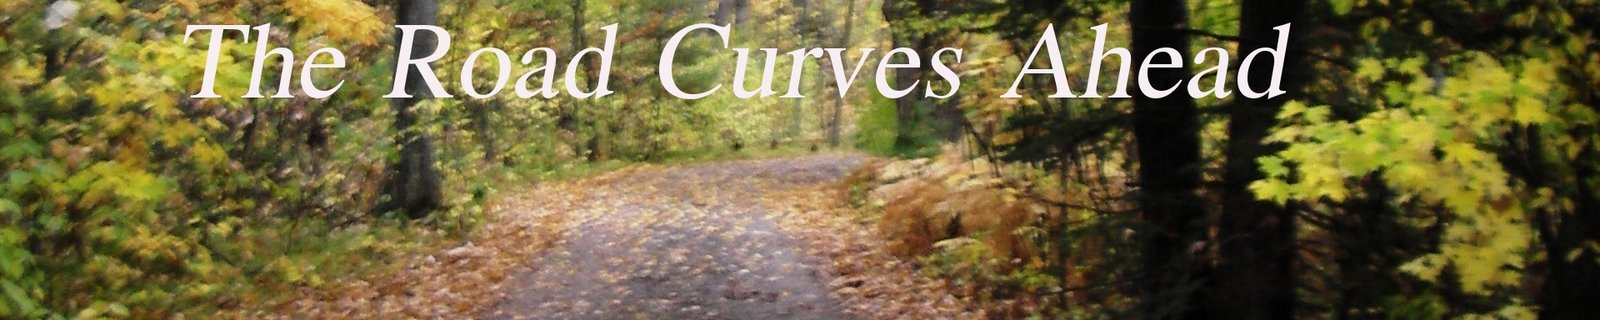 The Road Curves Ahead